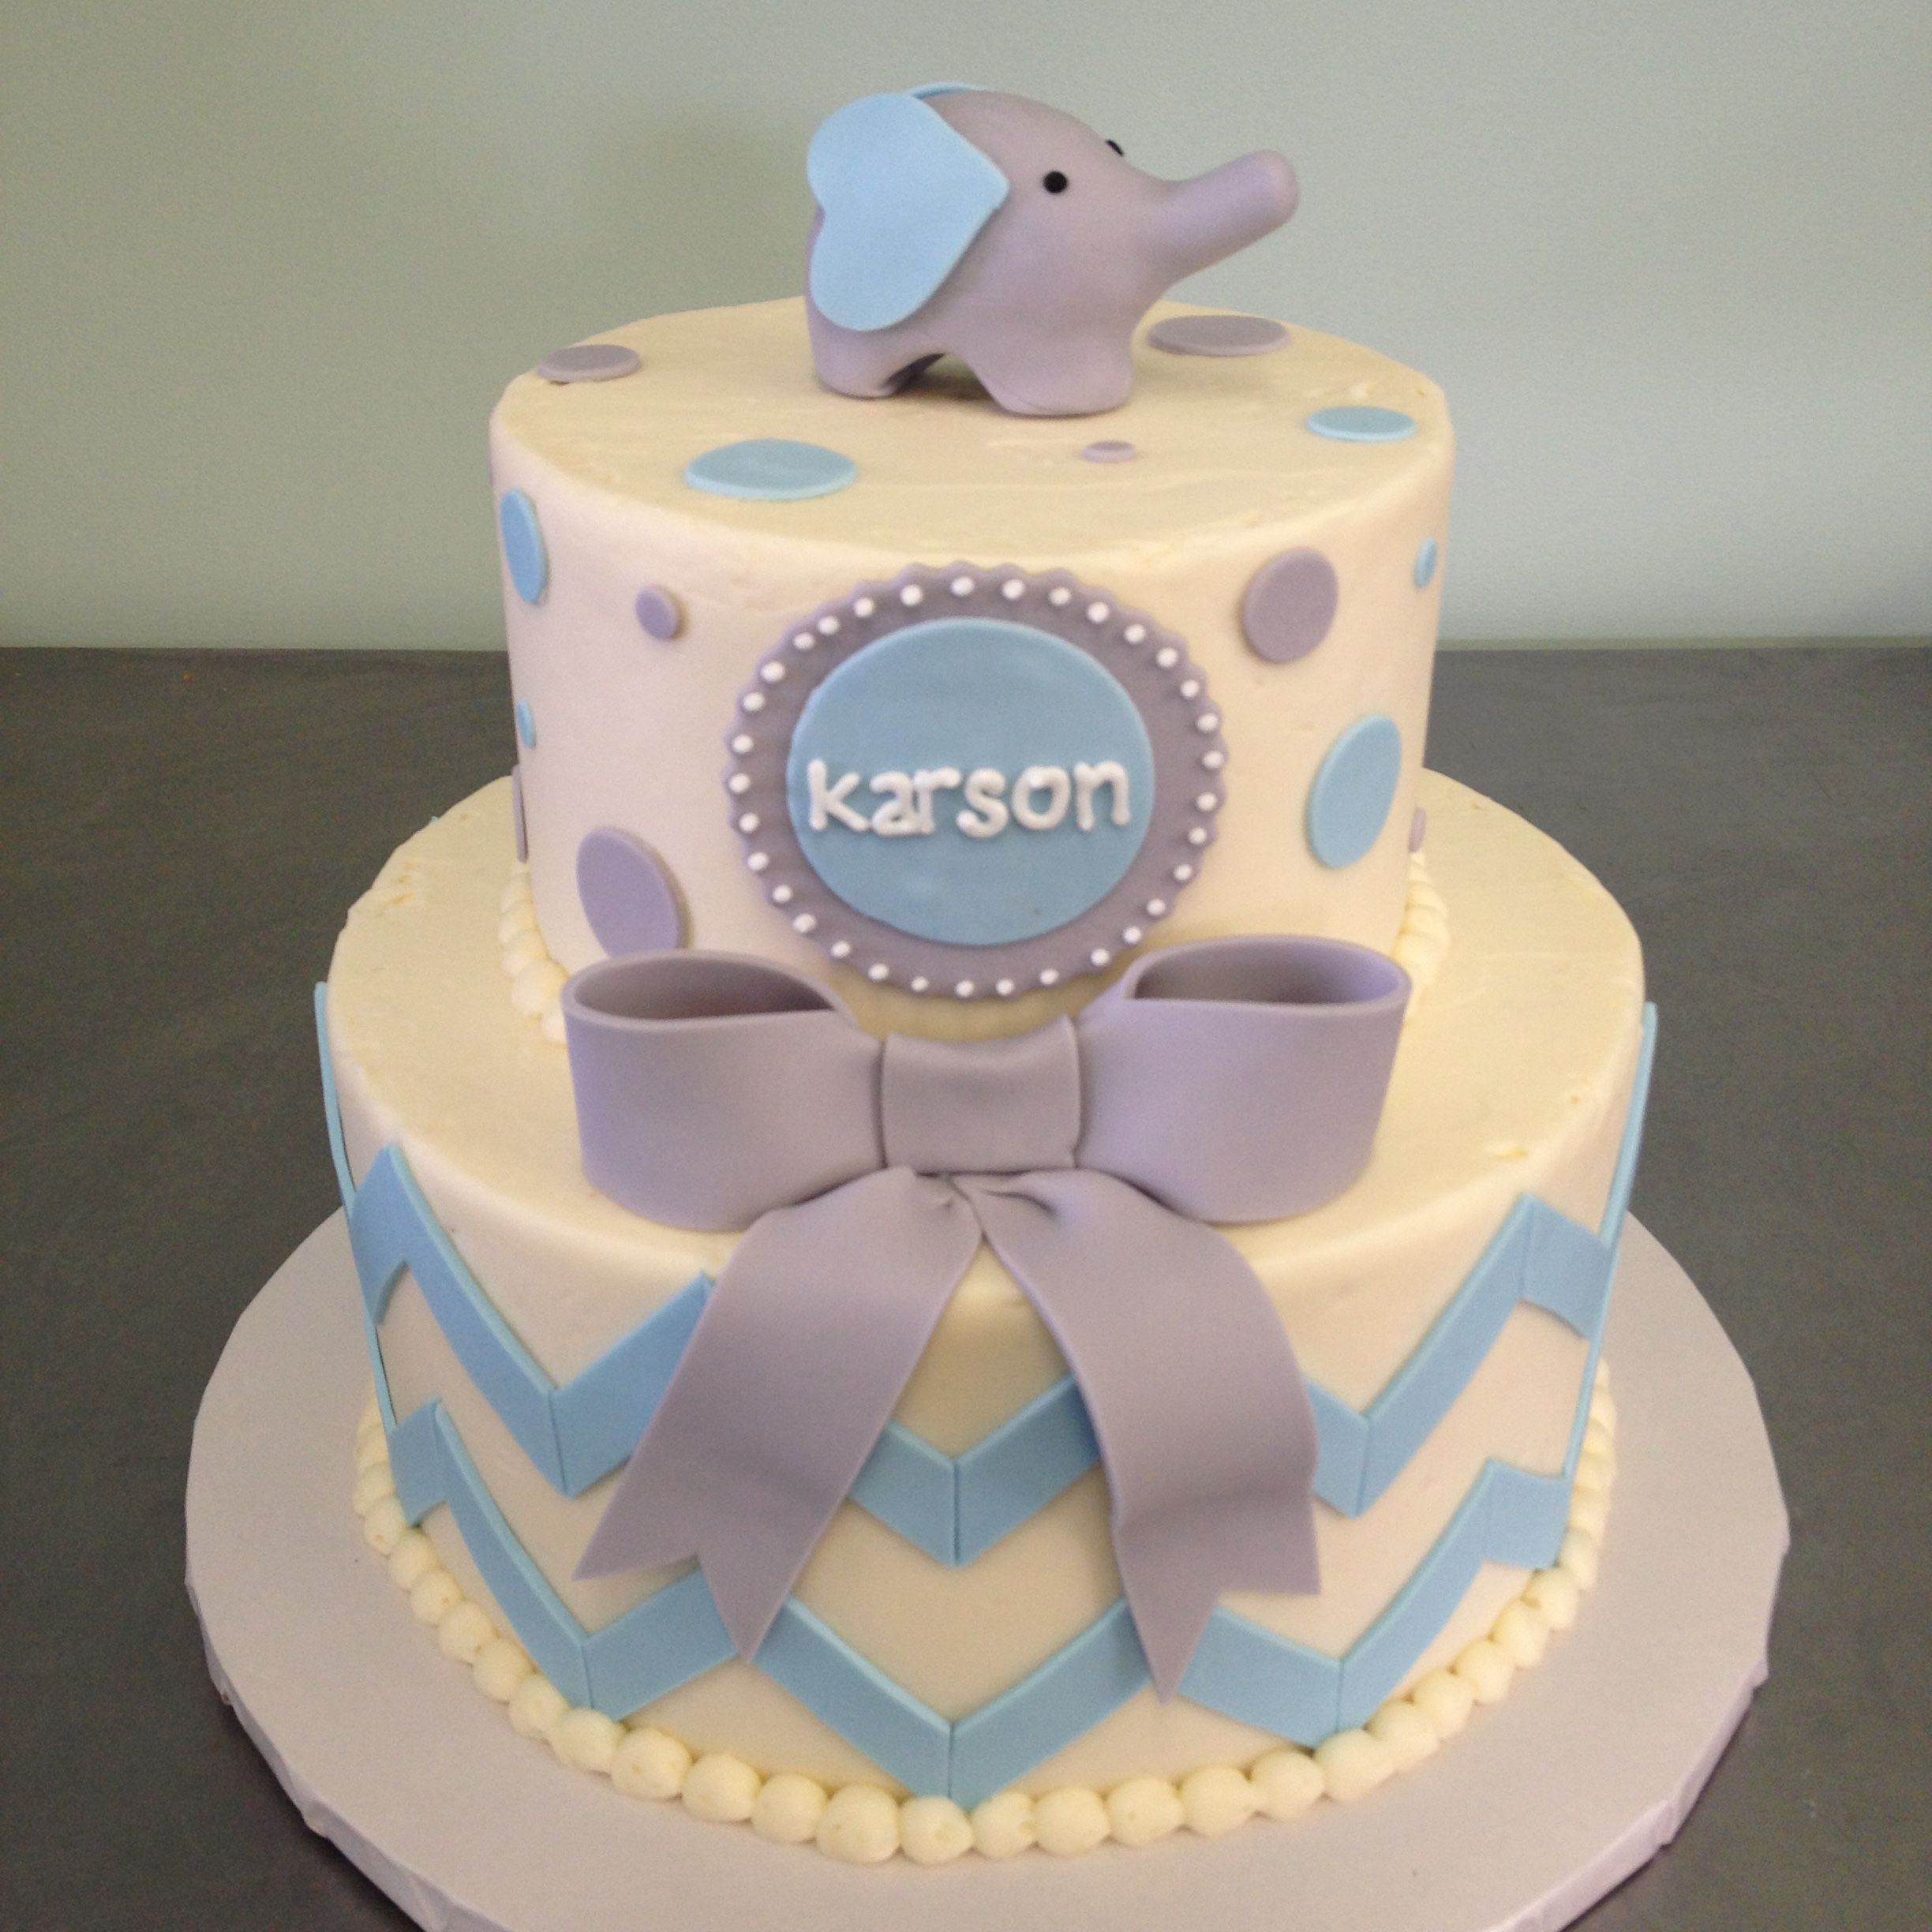 Boys Baby Shower Cake: Chevron Boy Baby Shower Cake With Fondant Elephant Topper